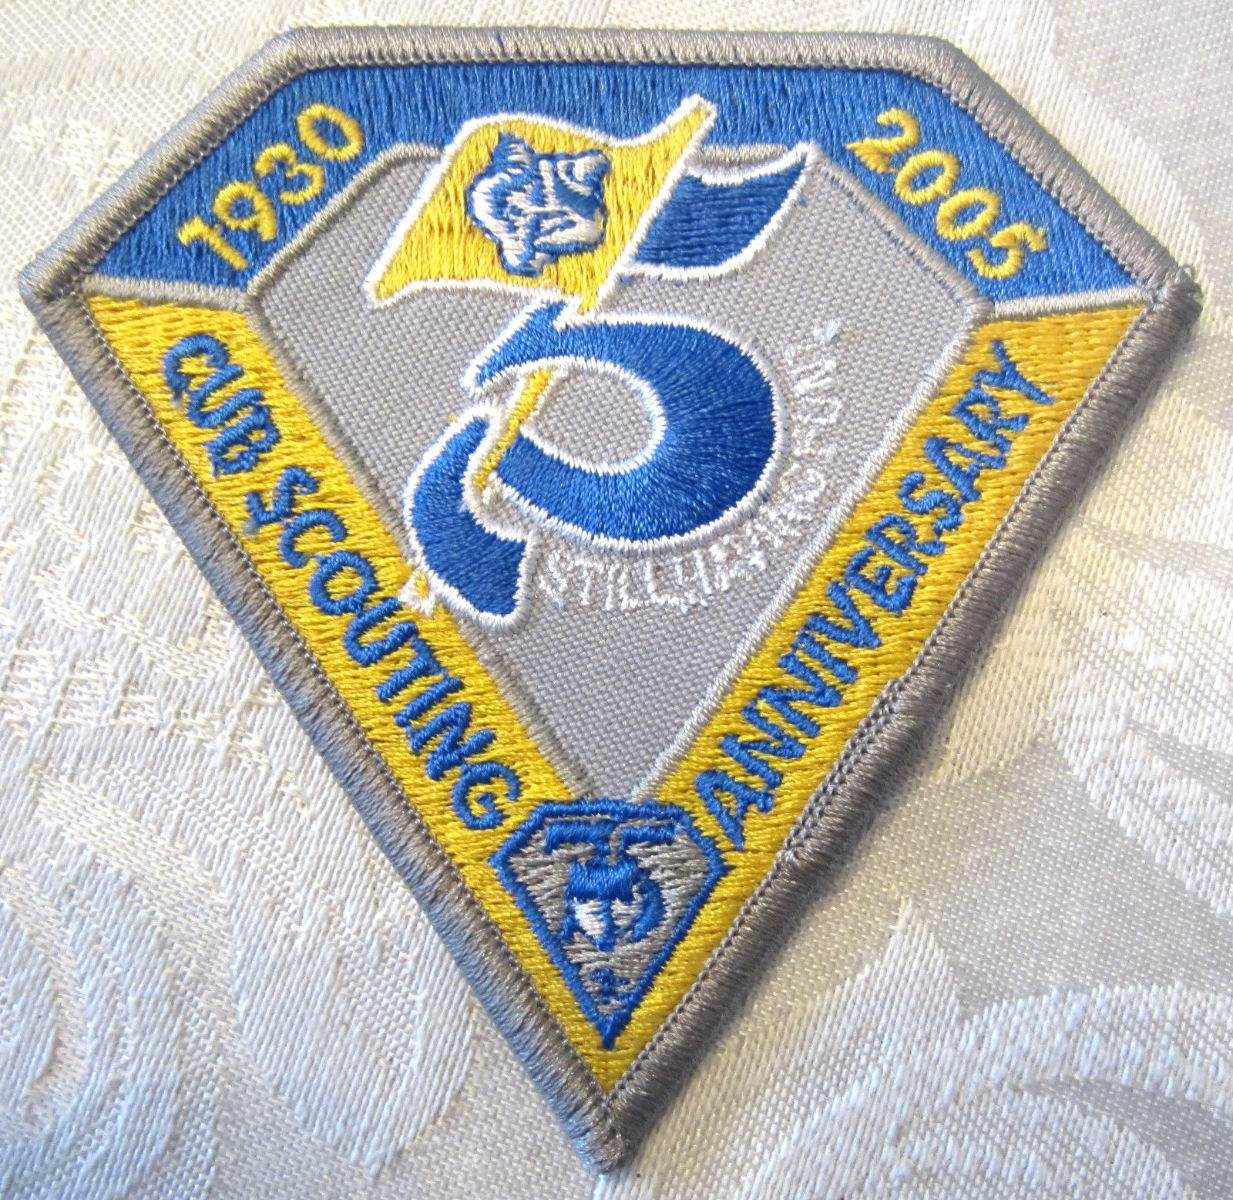 Bsa Boy Scout Uniform Patch Yellow And Blue Silver